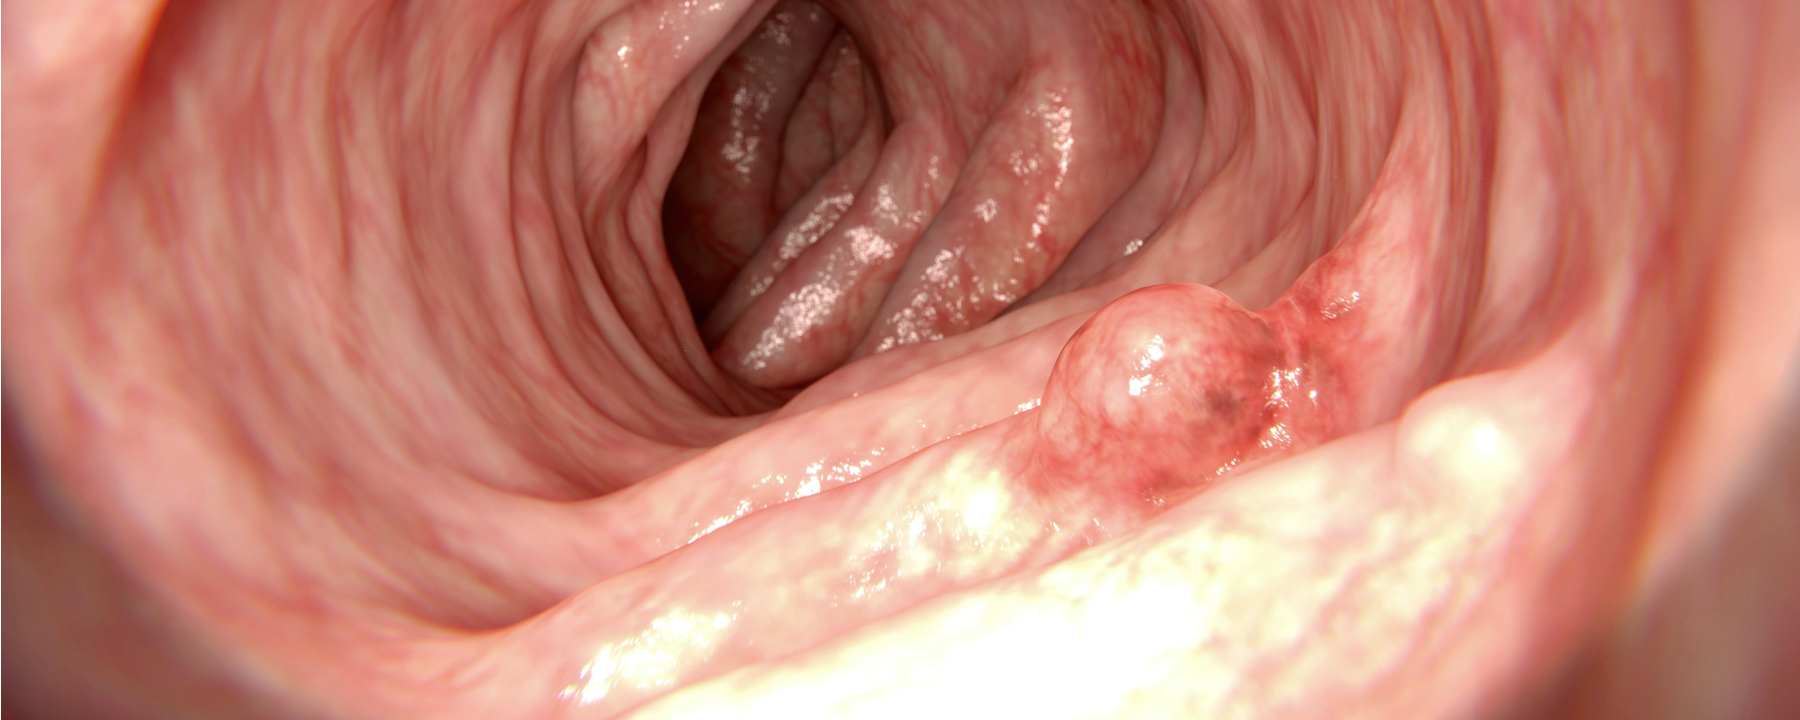 There's a Troubling Rise in Colorectal Cancer Among Young Adults